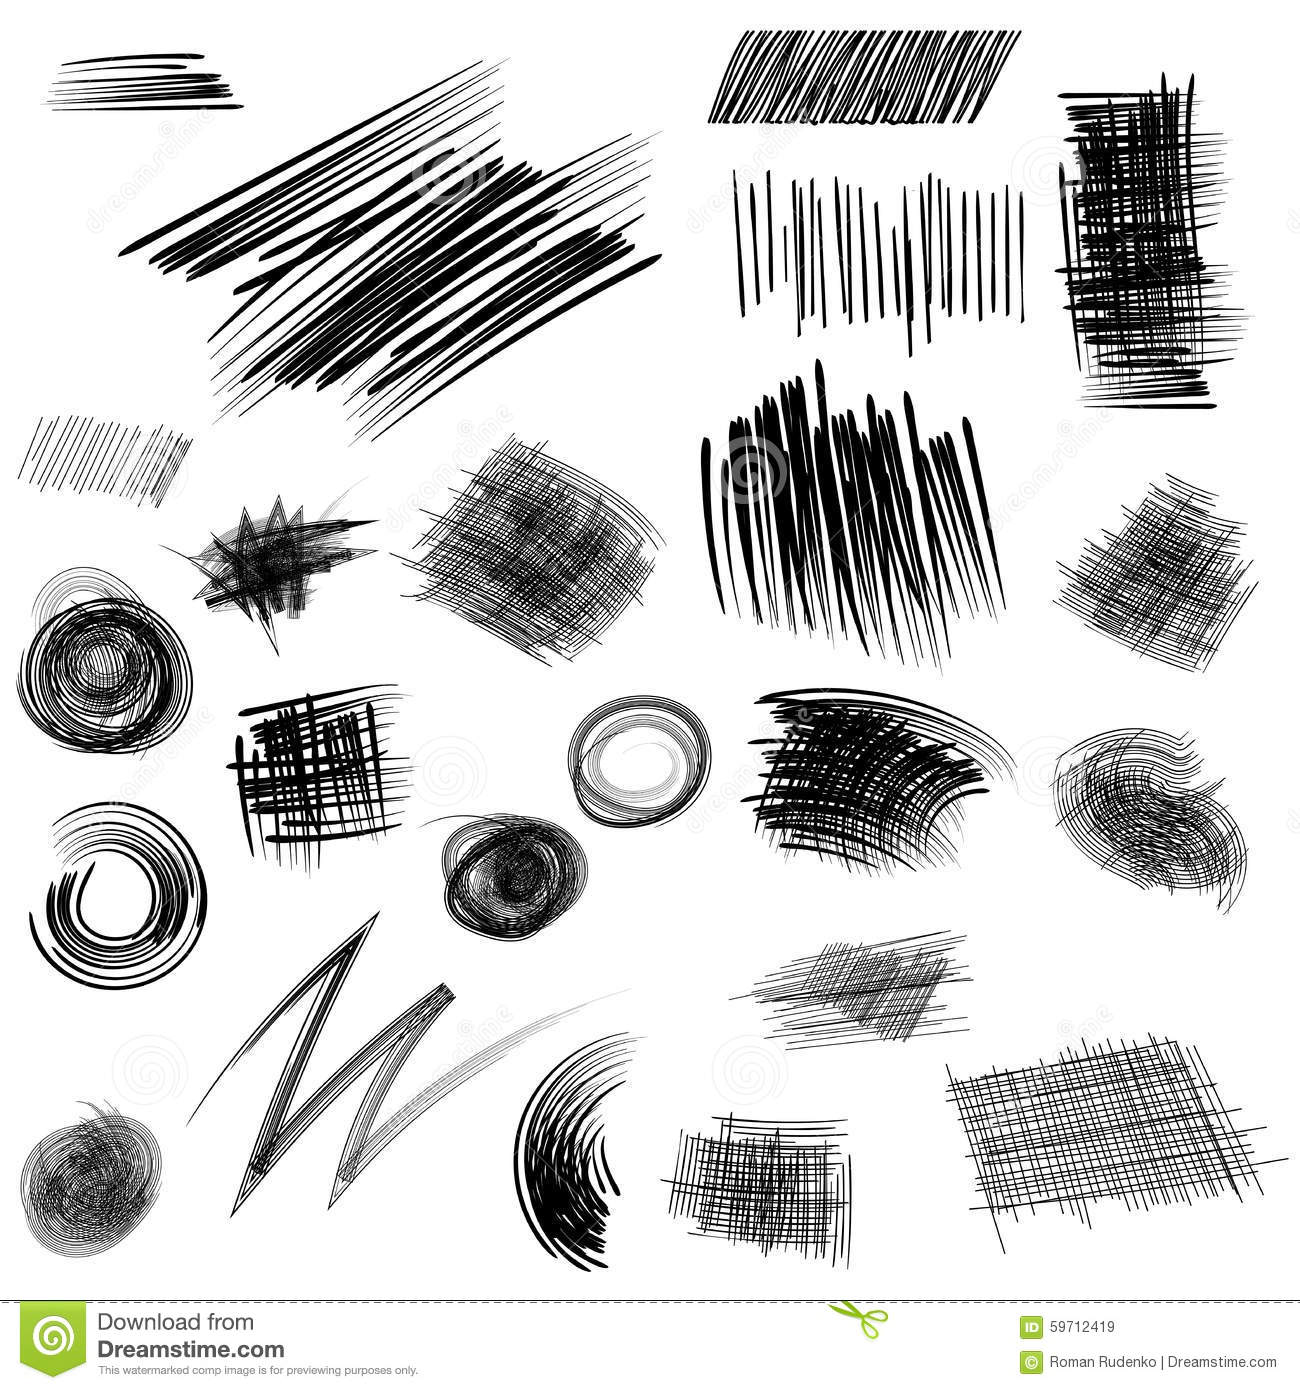 Scribble Drawing Objects : Pencil sketches hand drawn scribble shapes a set of